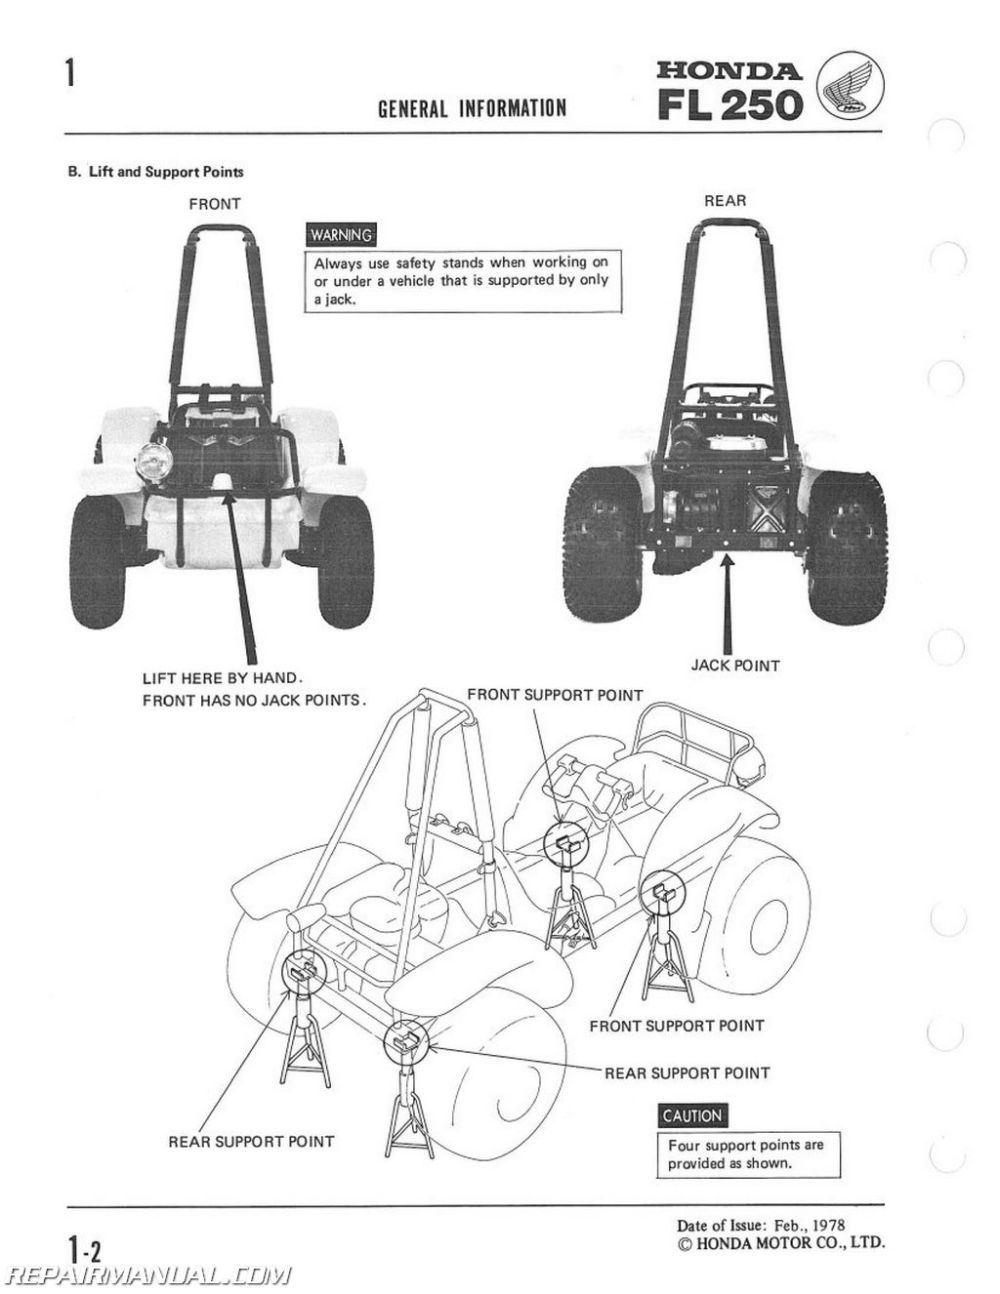 medium resolution of 1977 1984 fl250 honda odyssey service manual 2012 honda odyssey wiring diagram for a honda odyssey atv wiring diagram